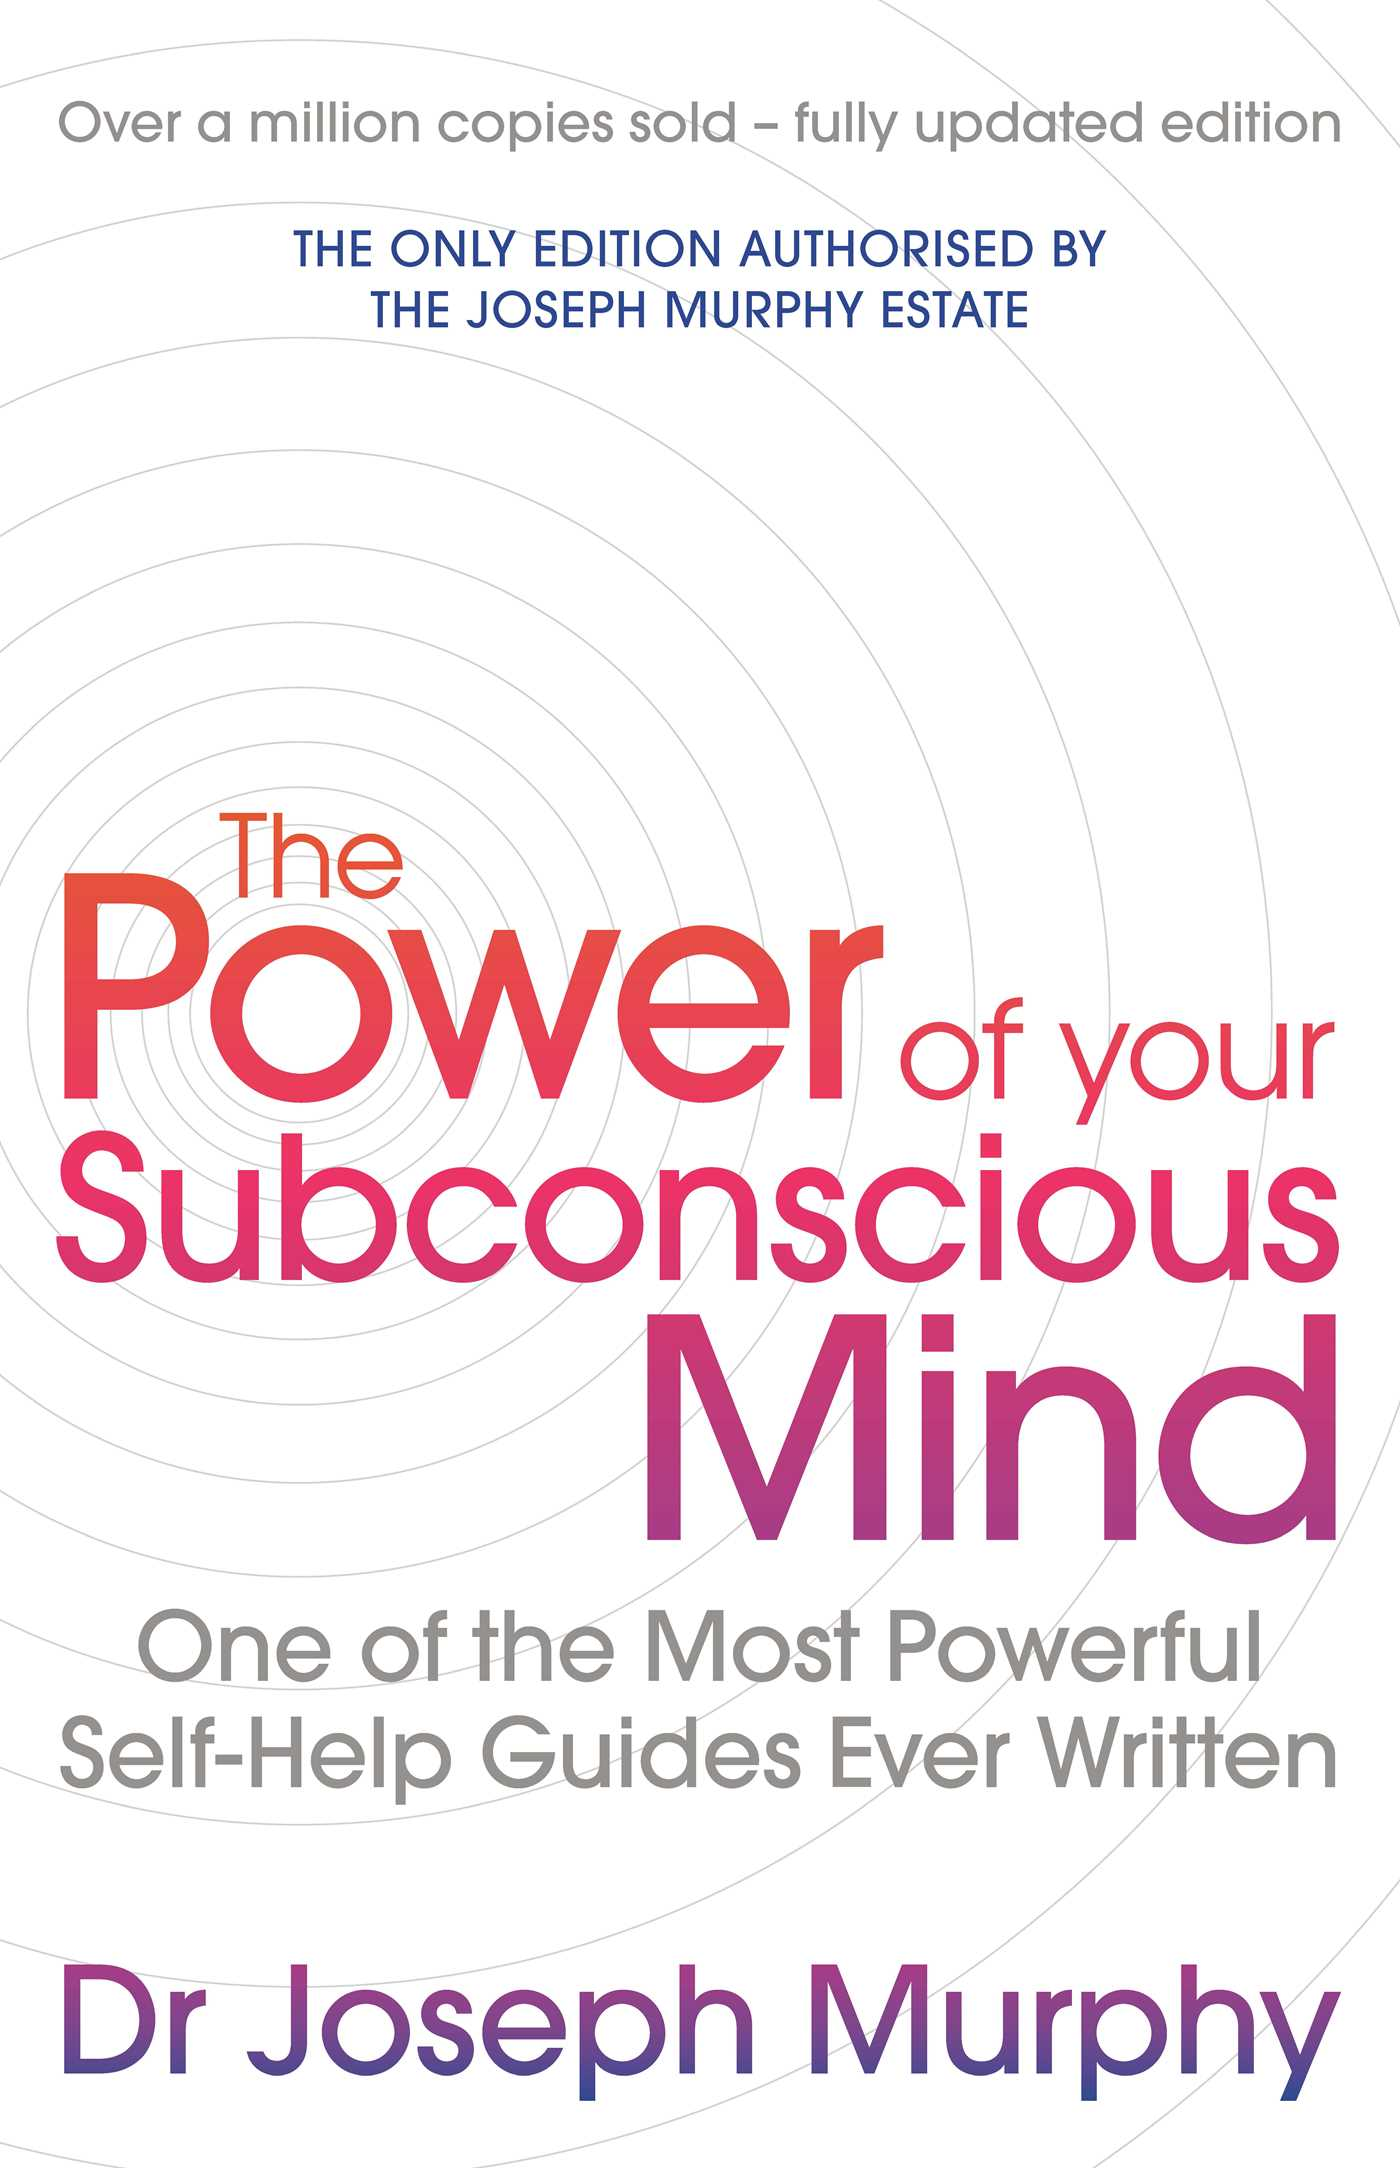 The power of your subconscious mind revised 9781471179396 hr